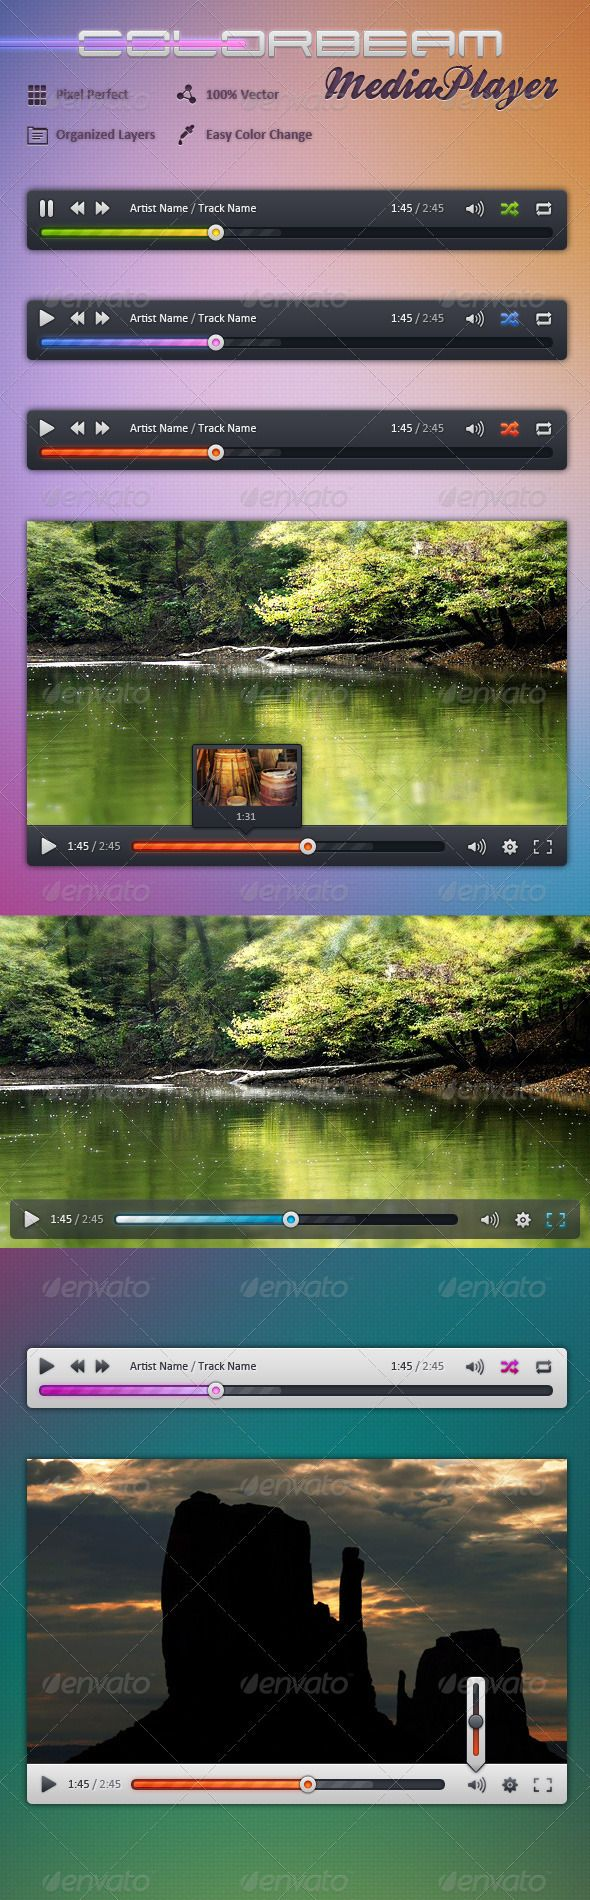 Colorbeam MediaPlayer  #GraphicRiver         Design for a Video/Audio WebPlayer or standalone MediaPlayer application. Available in 2 basic colors (black and white) and easy editable colors of the processbar, handle dot, volume meter and control icons. A short instruction how to change the colors is included.  Features   100% Vector Shapes  Pixel Perfect  Organized Layers  2 basic colors: Black and white  Windowed and fullscreen mode design  Easy editable processbar, handle dot, volume meter…